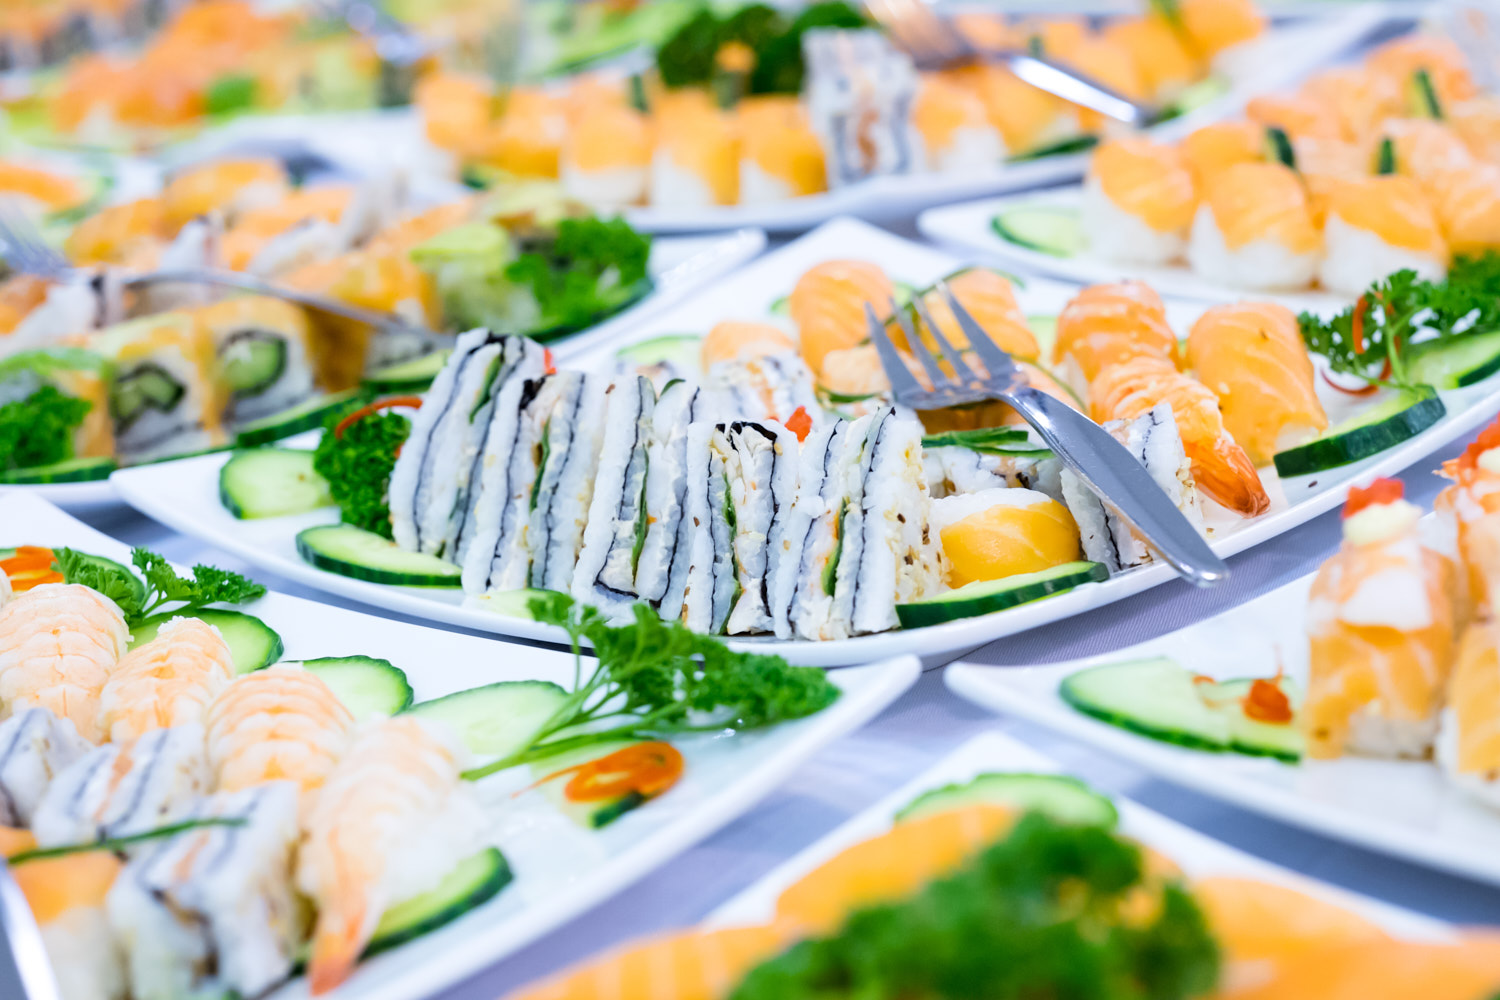 Food Photography by Pretoria Food Photographer Crafford Productions